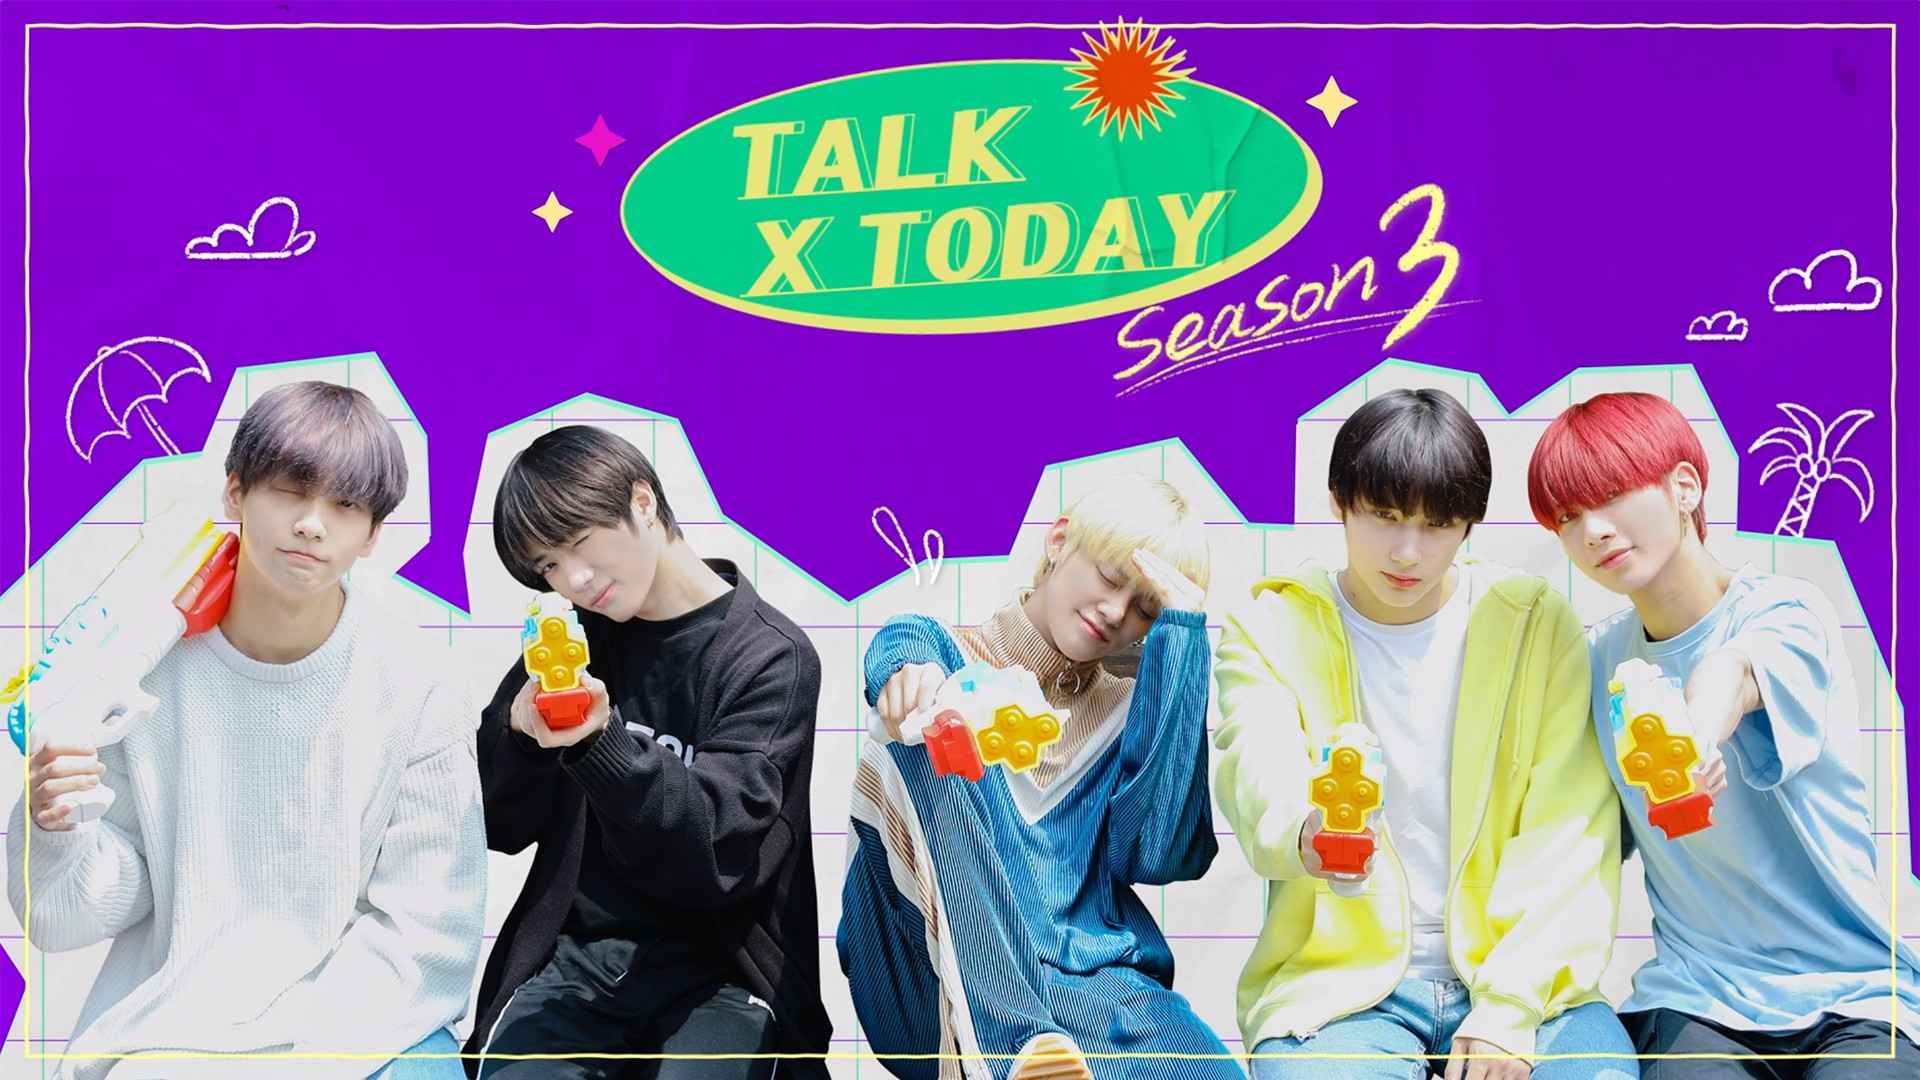 TALK X TODAY : Season3 Teaser - TXT (투모로우바이투게더)